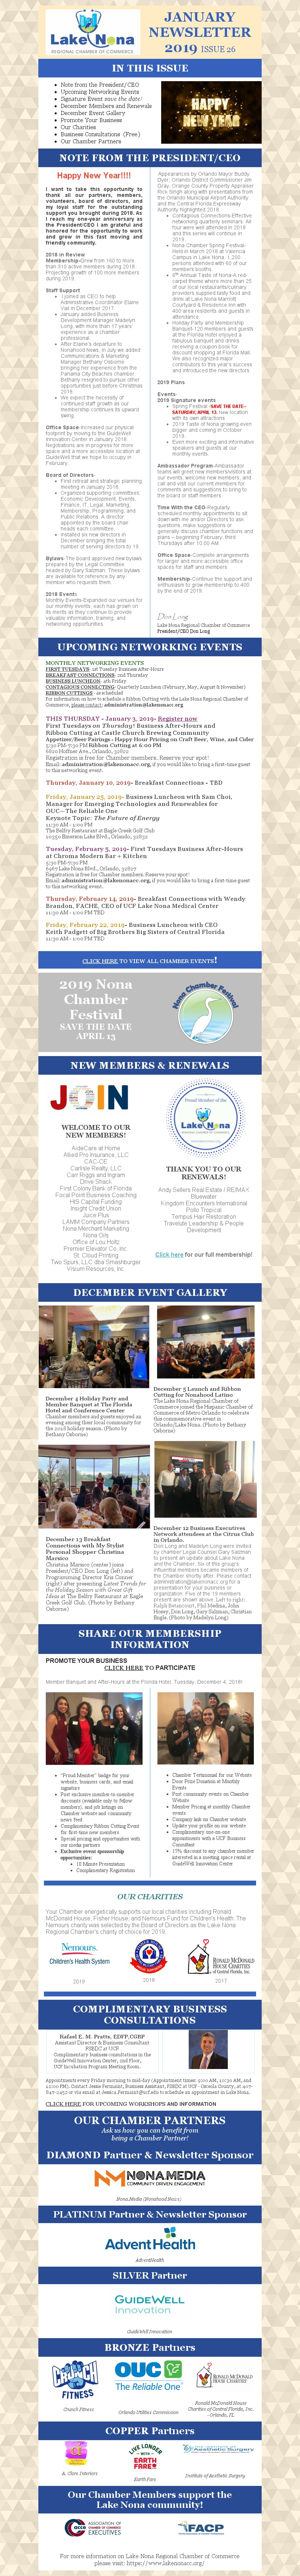 January-2019-Chamber-Newsletter.jpg